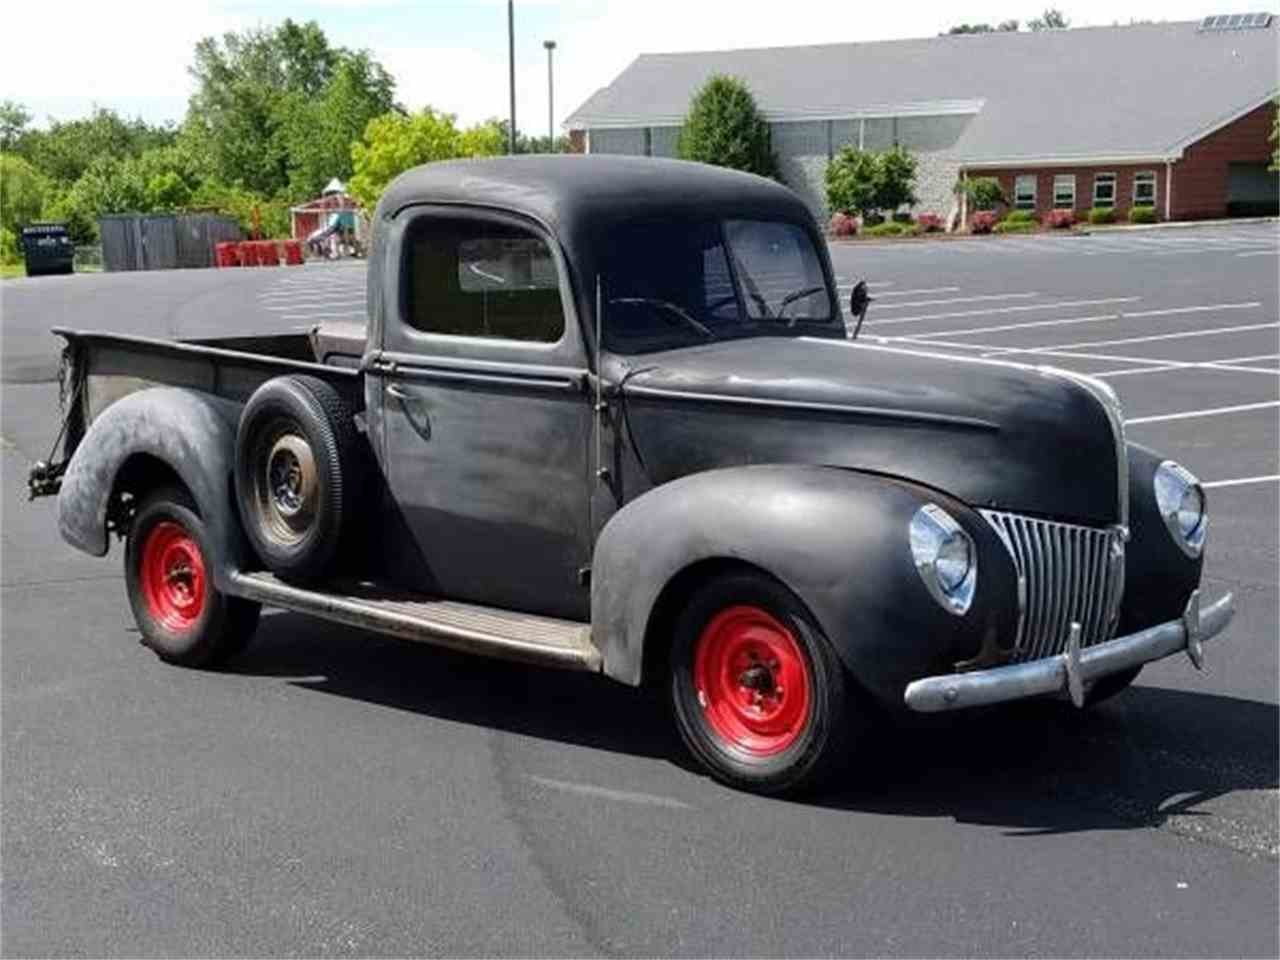 New 1940 Ford Pickup For Sale Classiccars Com Cc 993278 On This Month Original 1024 x 768